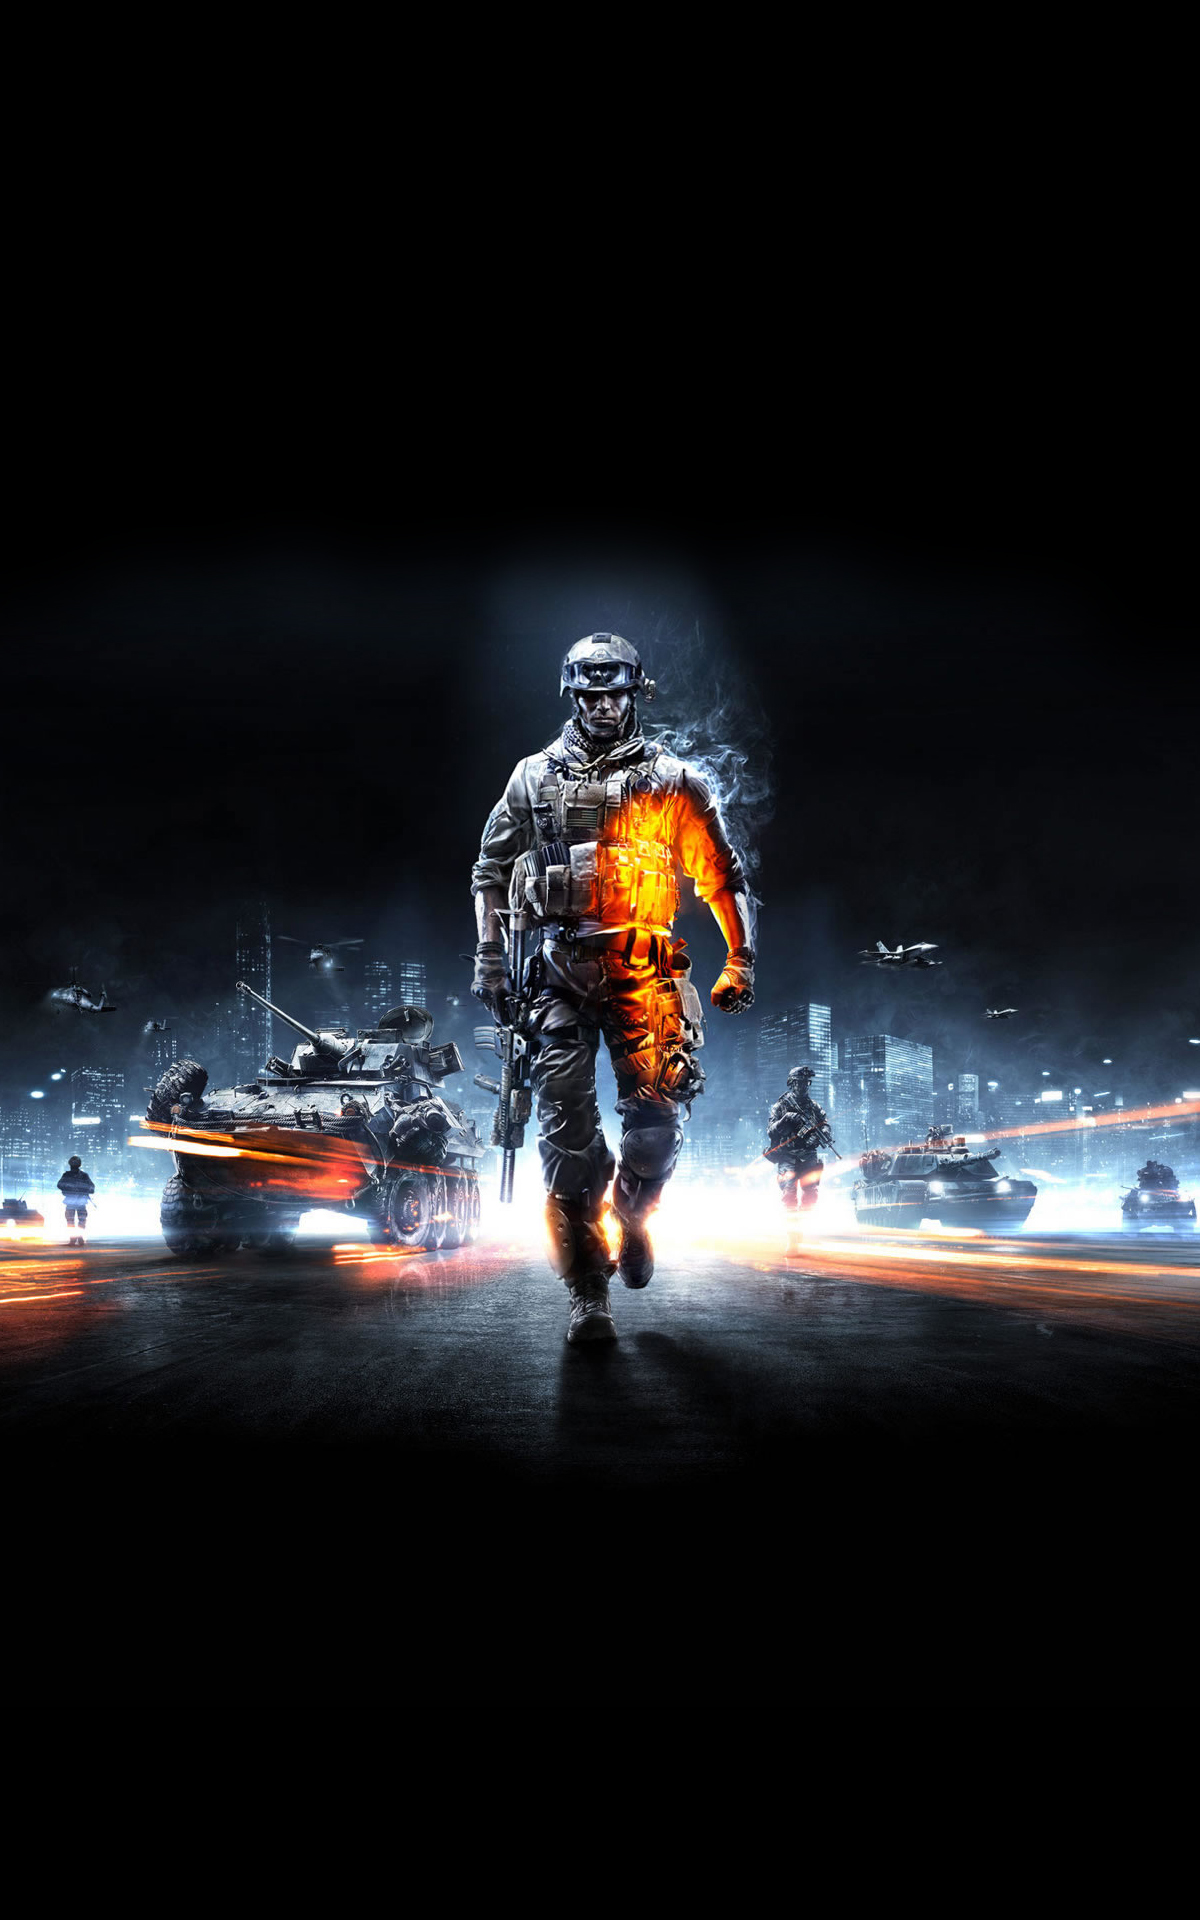 Battlefield 3 1200x1920 (without logo)